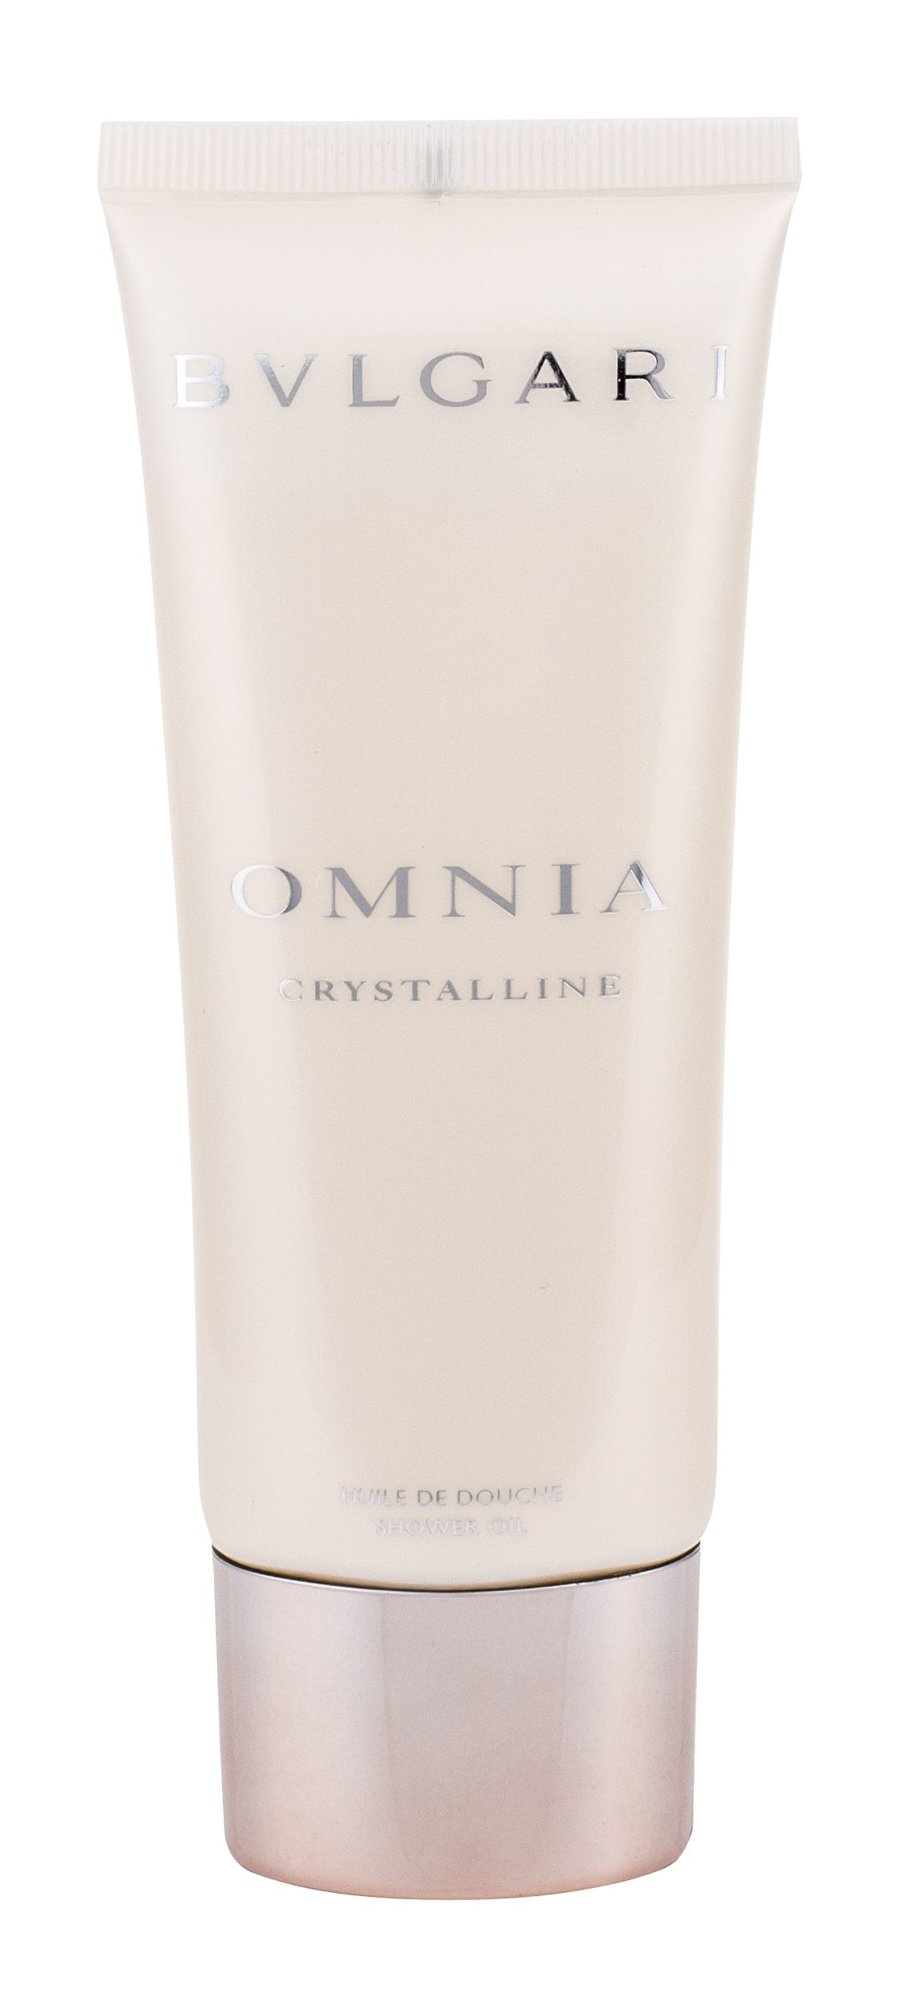 Bvlgari Omnia Crystalline Shower oil 100ml